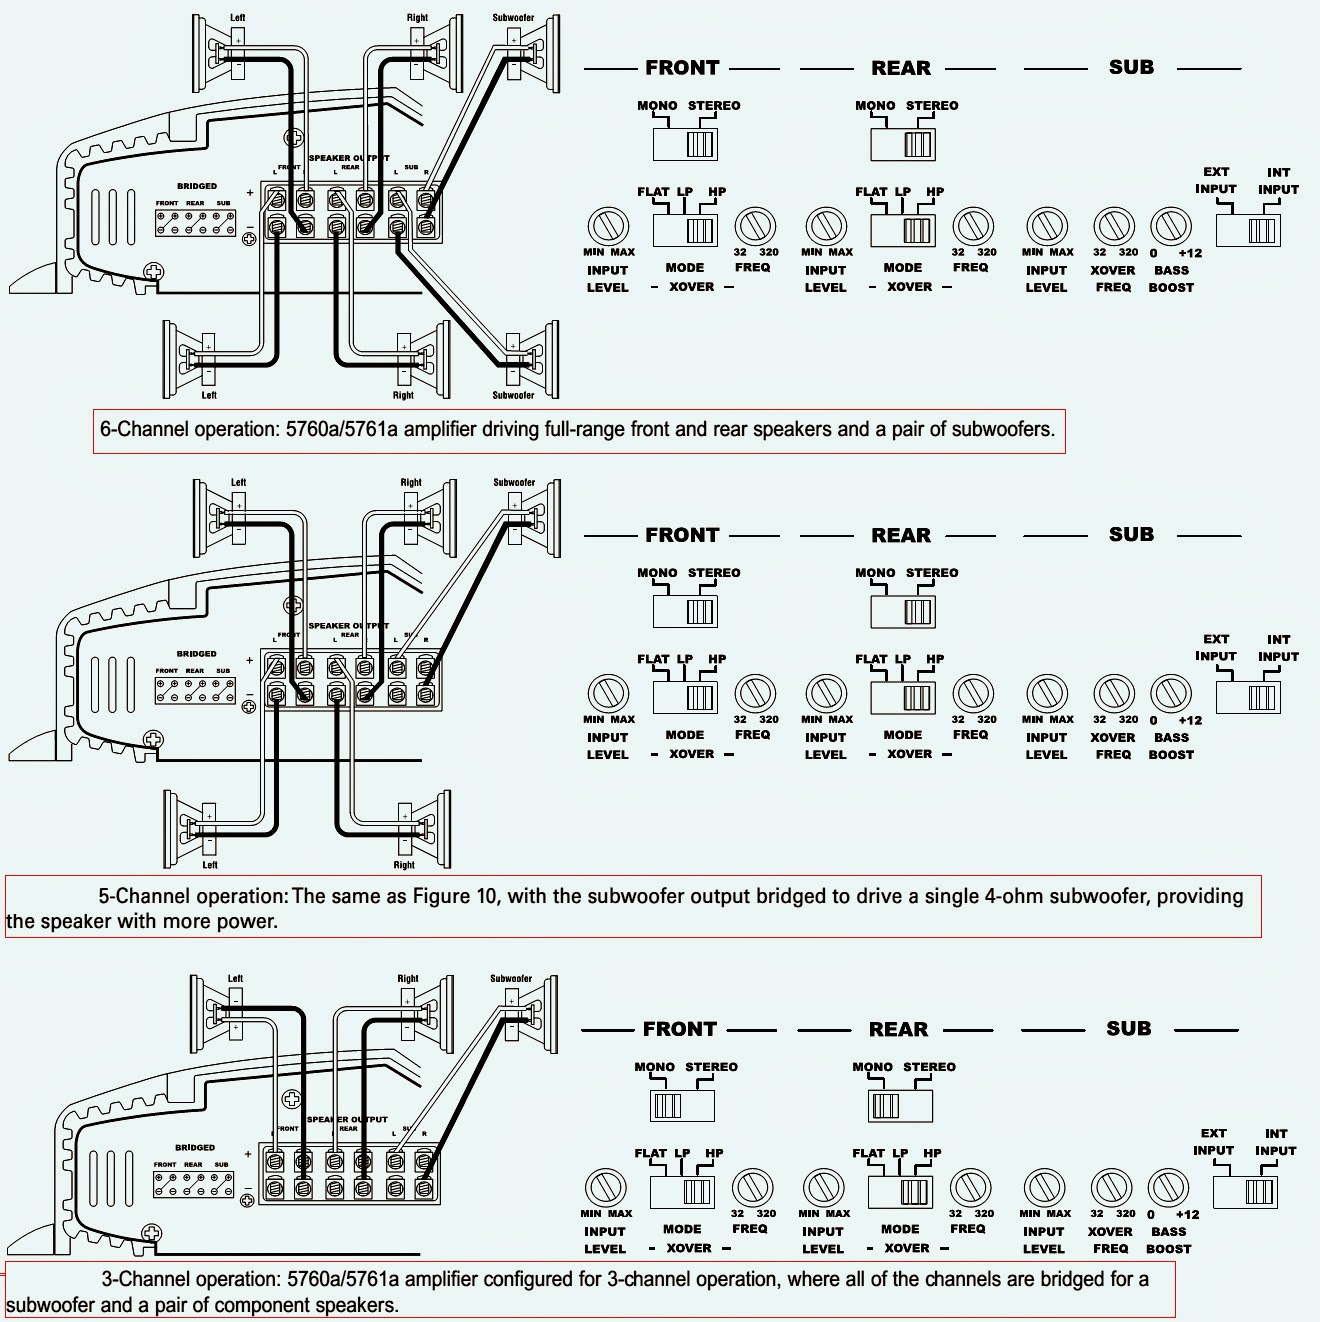 4 channel wiring diagram r22 pressure enthalpy infinity 5760a 5761a 6 power amplifier